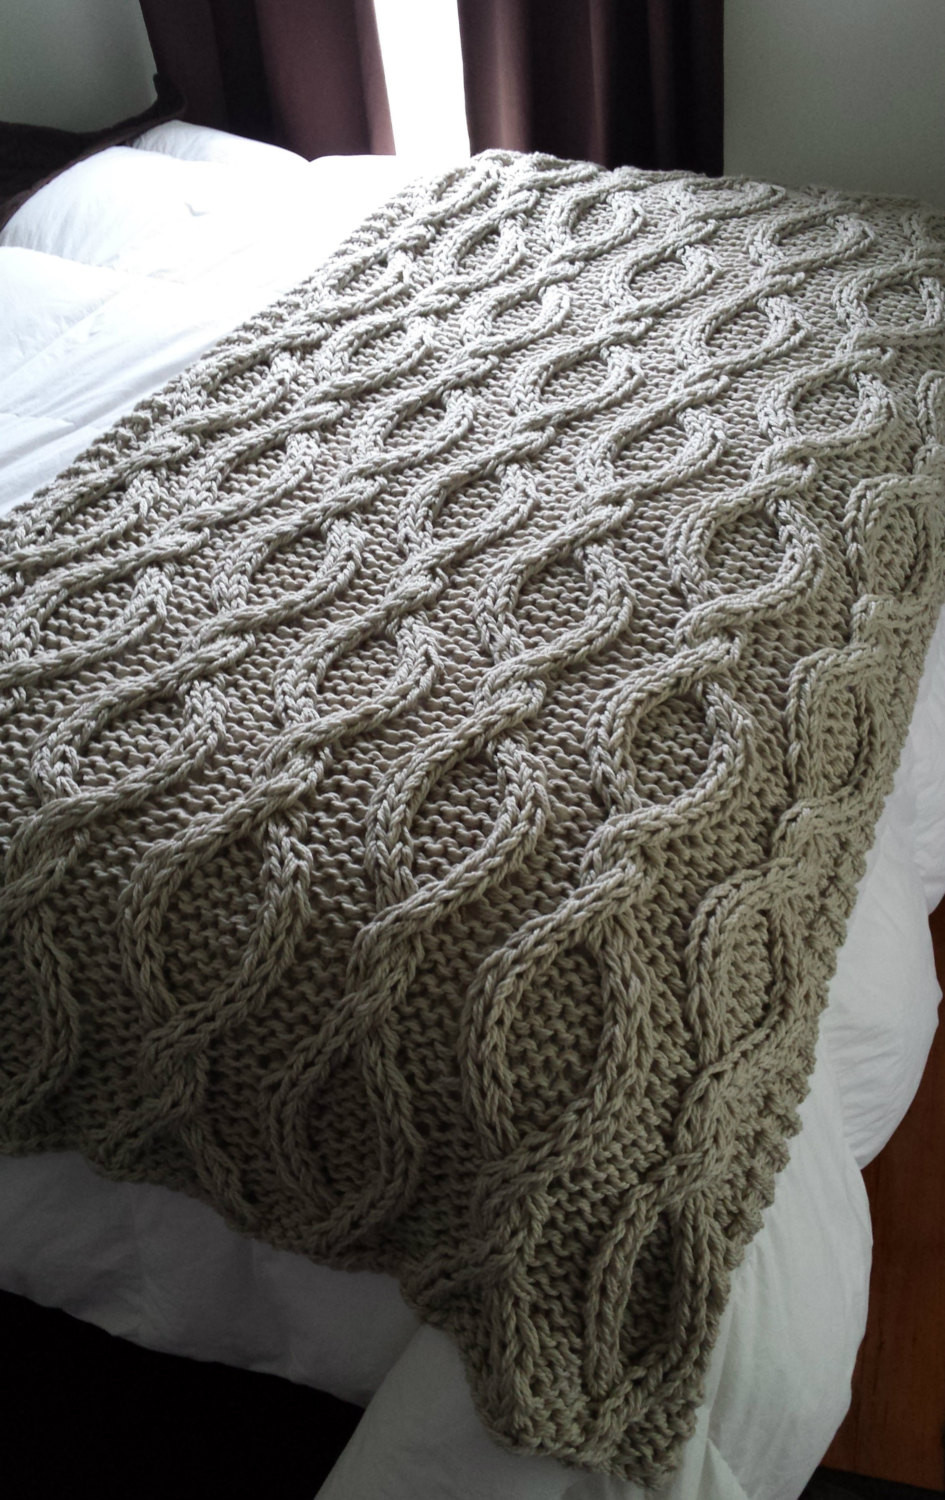 Bulky Knit Blanket Awesome Super Bulky Yarn Knitting Patterns Of Top 45 Images Bulky Knit Blanket